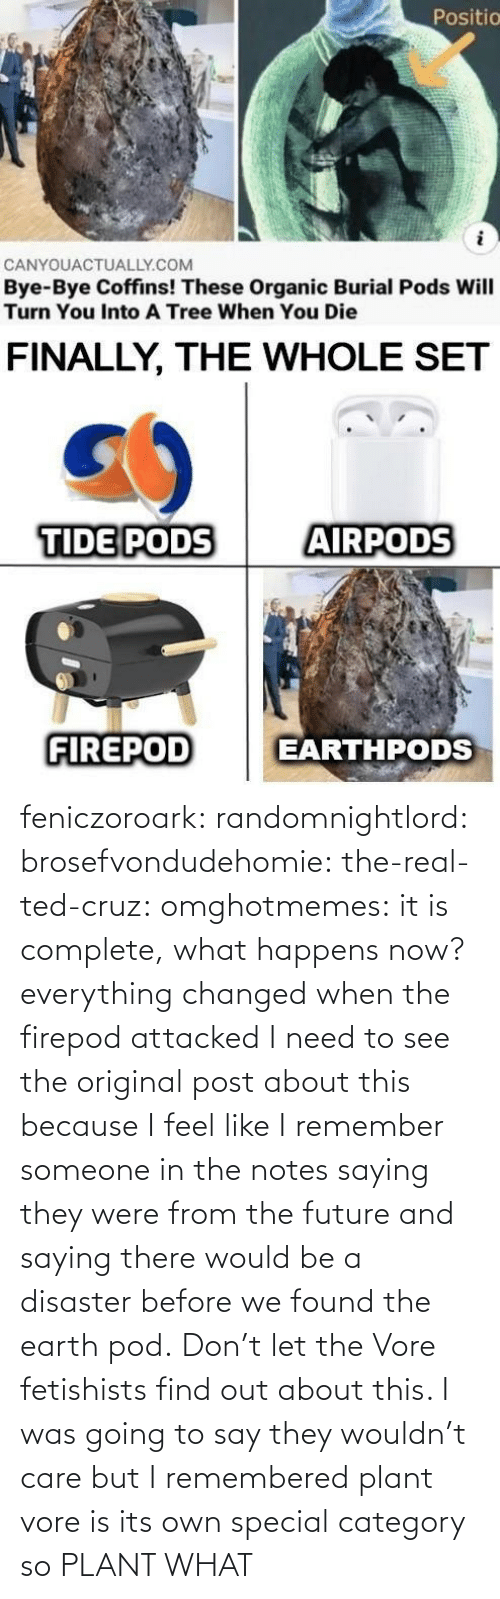 care: feniczoroark:  randomnightlord:  brosefvondudehomie: the-real-ted-cruz:  omghotmemes: it is complete, what happens now? everything changed when the firepod attacked    I need to see the original post about this because I feel like I remember someone in the notes saying they were from the future and saying there would be a disaster before we found the earth pod.    Don't let the Vore fetishists find out about this.    I was going to say they wouldn't care but I remembered plant vore is its own special category so   PLANT WHAT